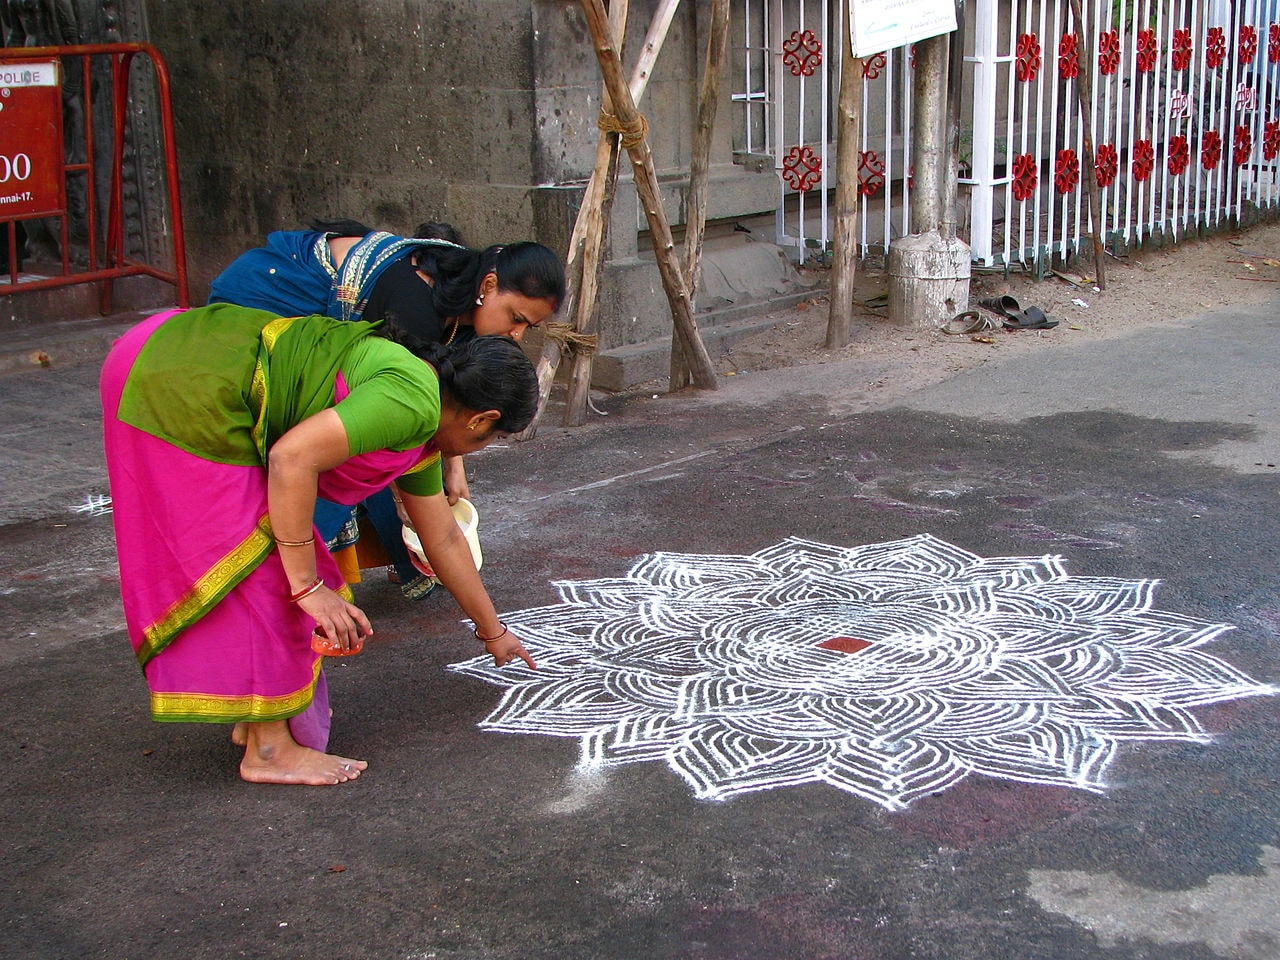 1280px-India_-_Sights_&_Culture_-_Women_drawing_an_intricate_kolam_outside_the_Mylapore_Temple_(2278407131)